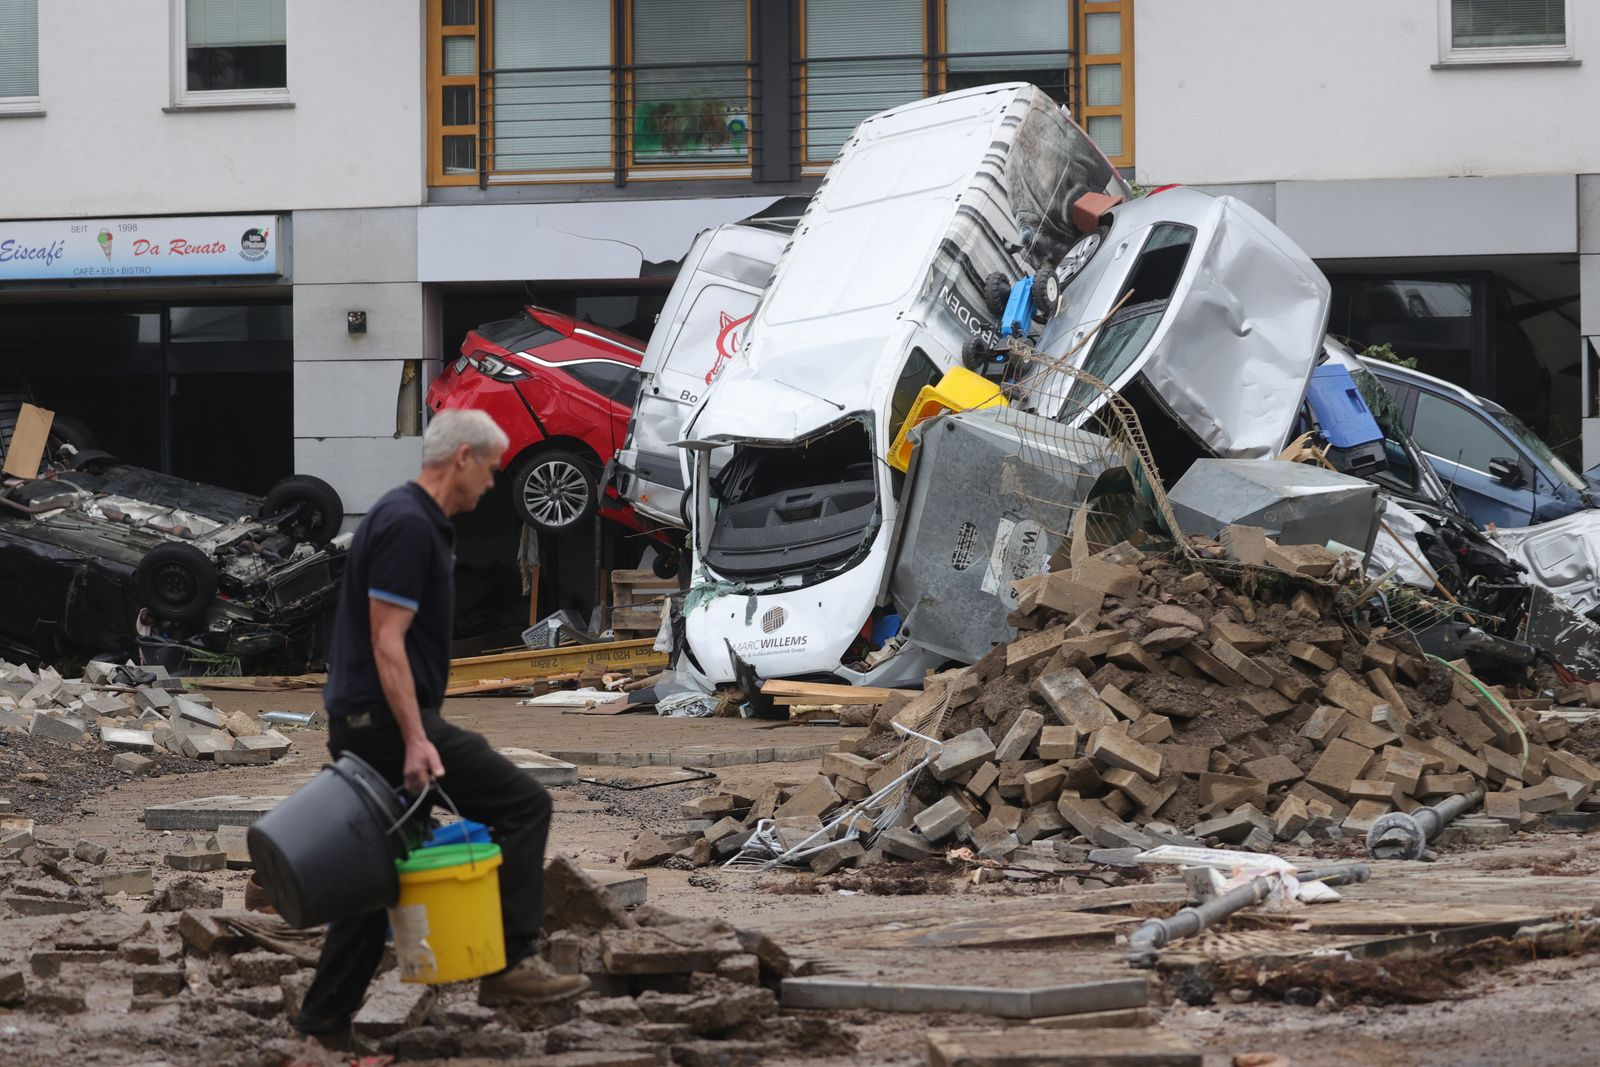 Thunderstorms with heavy rain flood parts of western Germany